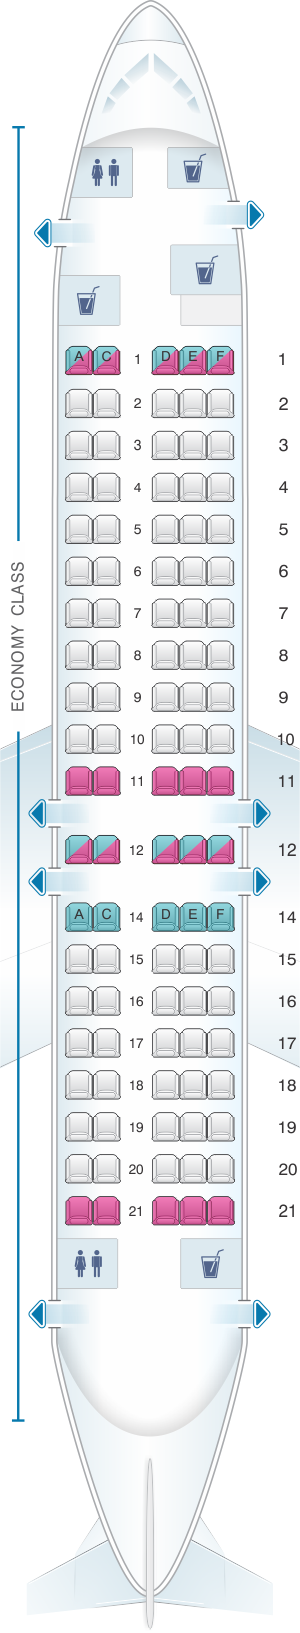 Seat map for Moldavian Airlines Fokker-100